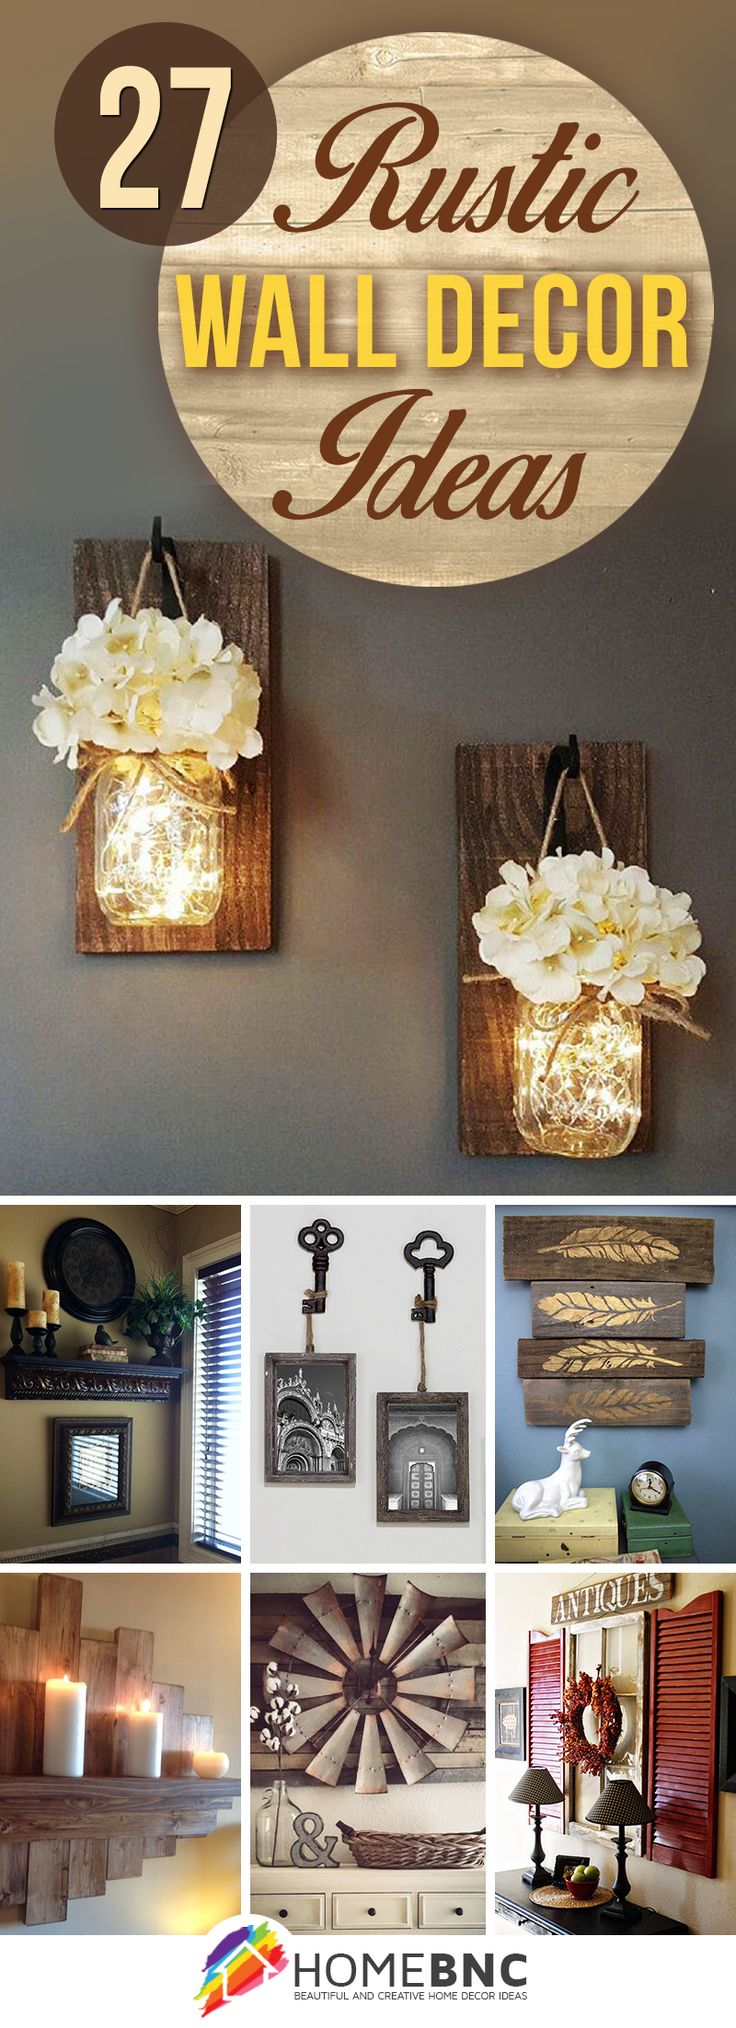 27 Rustic Wall Decor Ideas to Turn Shabby into Fabulous. 25  unique Diy wall decor ideas on Pinterest   Diy wall art  DIY